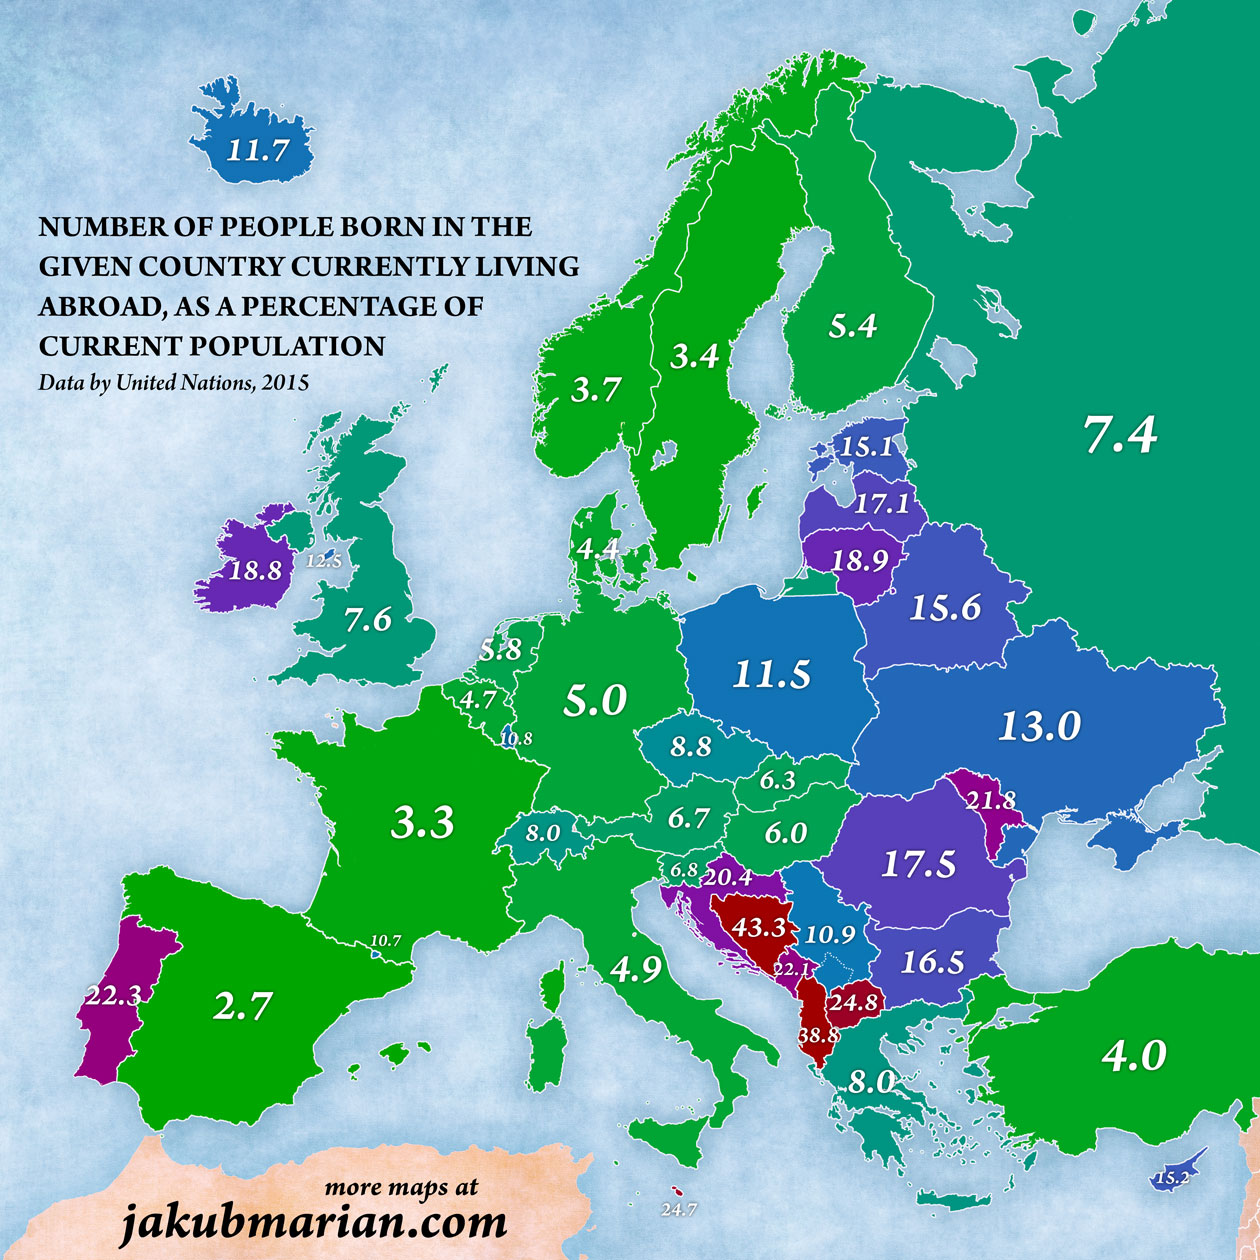 Number of people born in the given country currently living abroad, as a percentage of current population